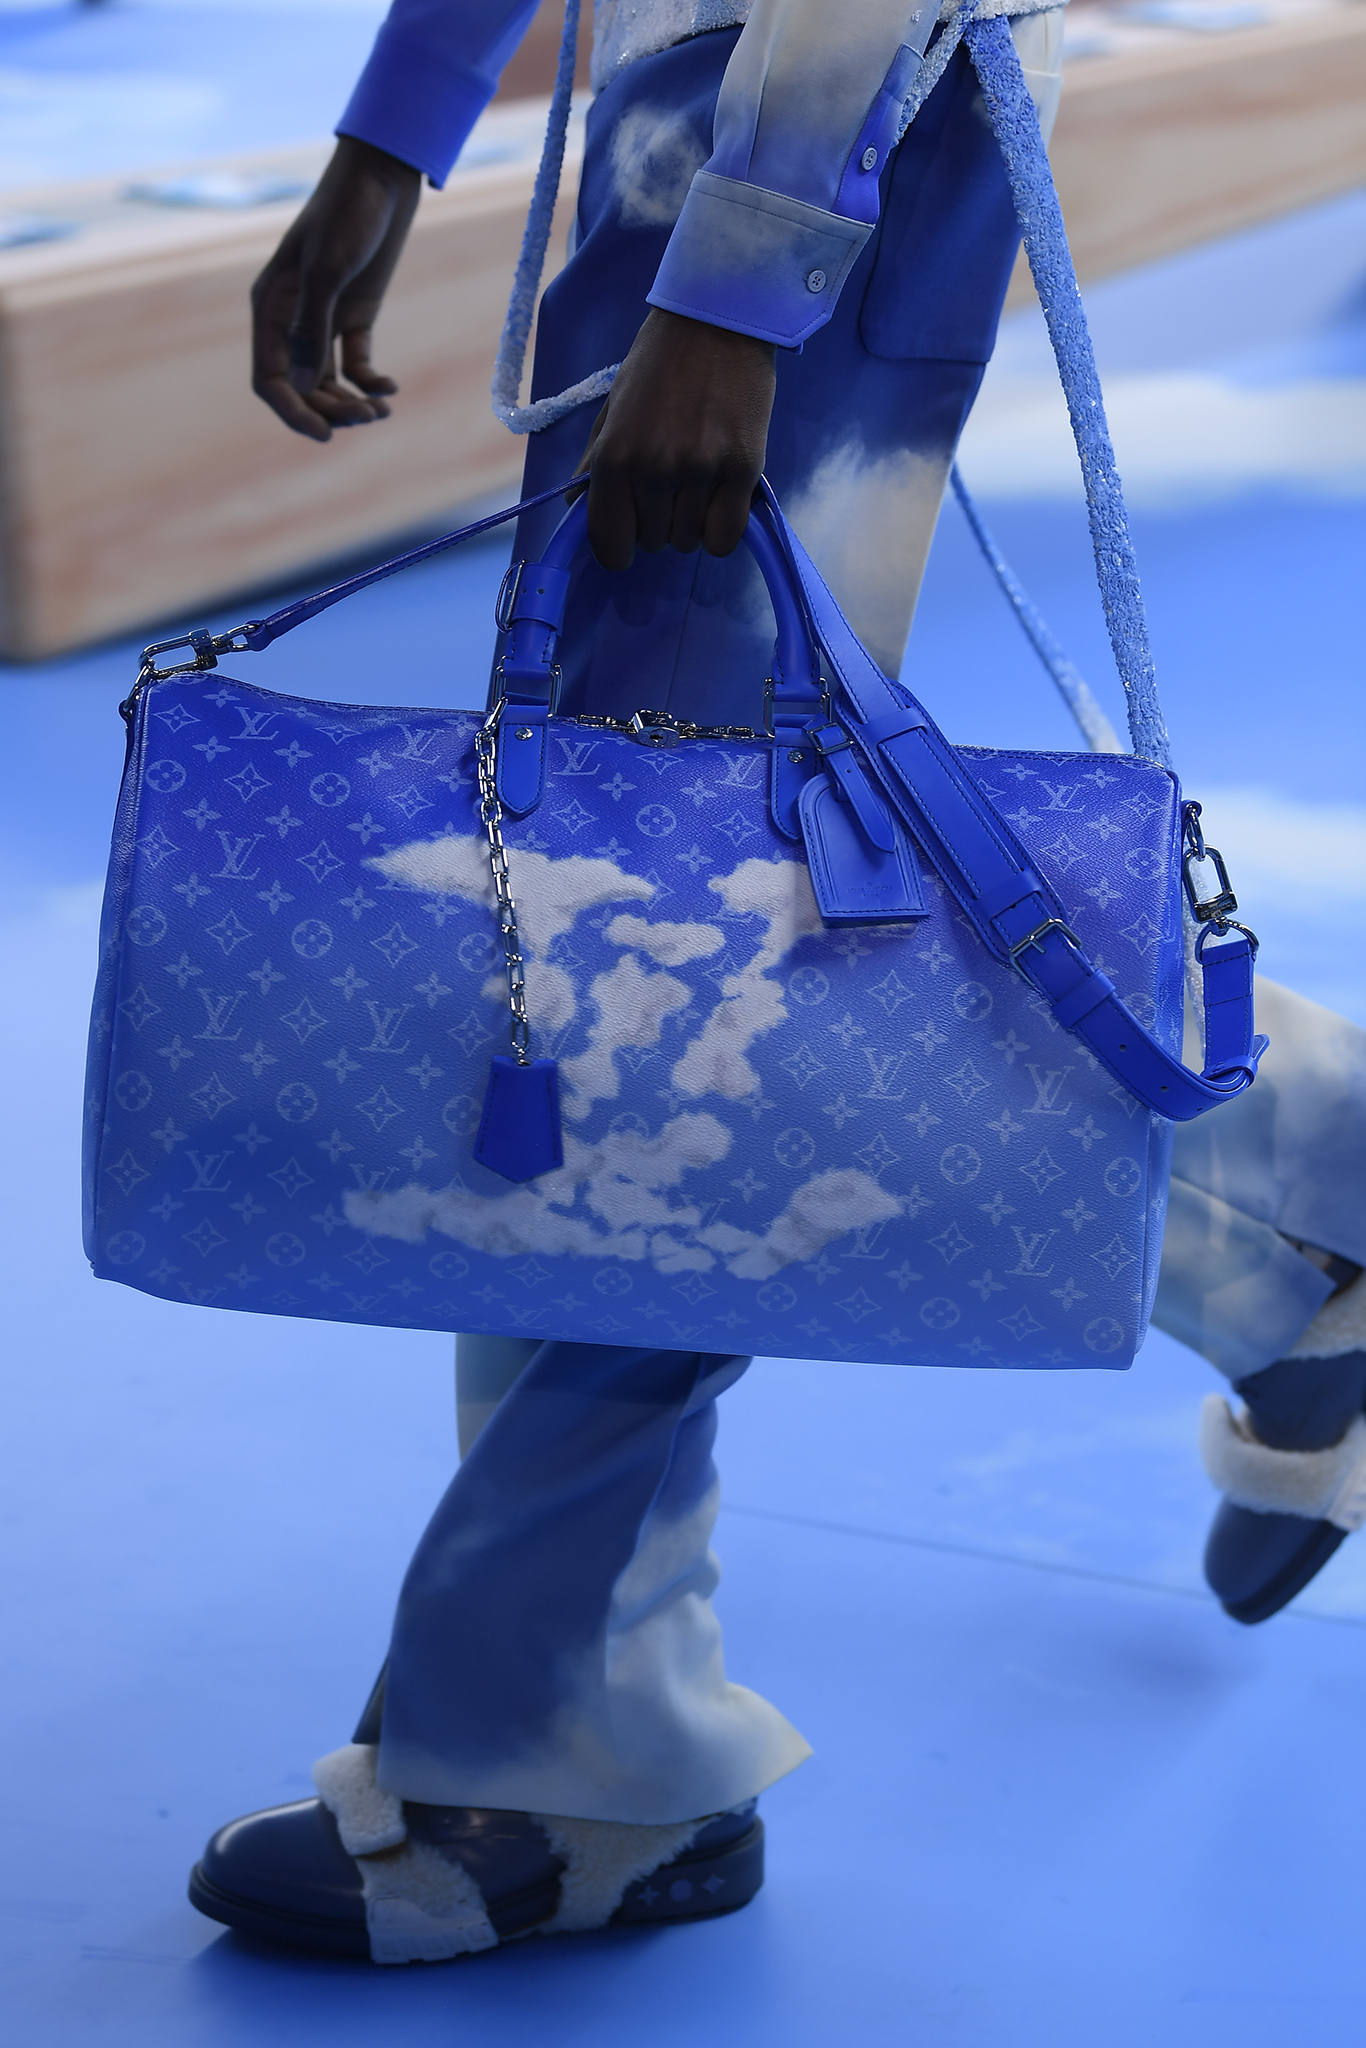 A selection of bags at Louis Vuitton Men's Fall 2020